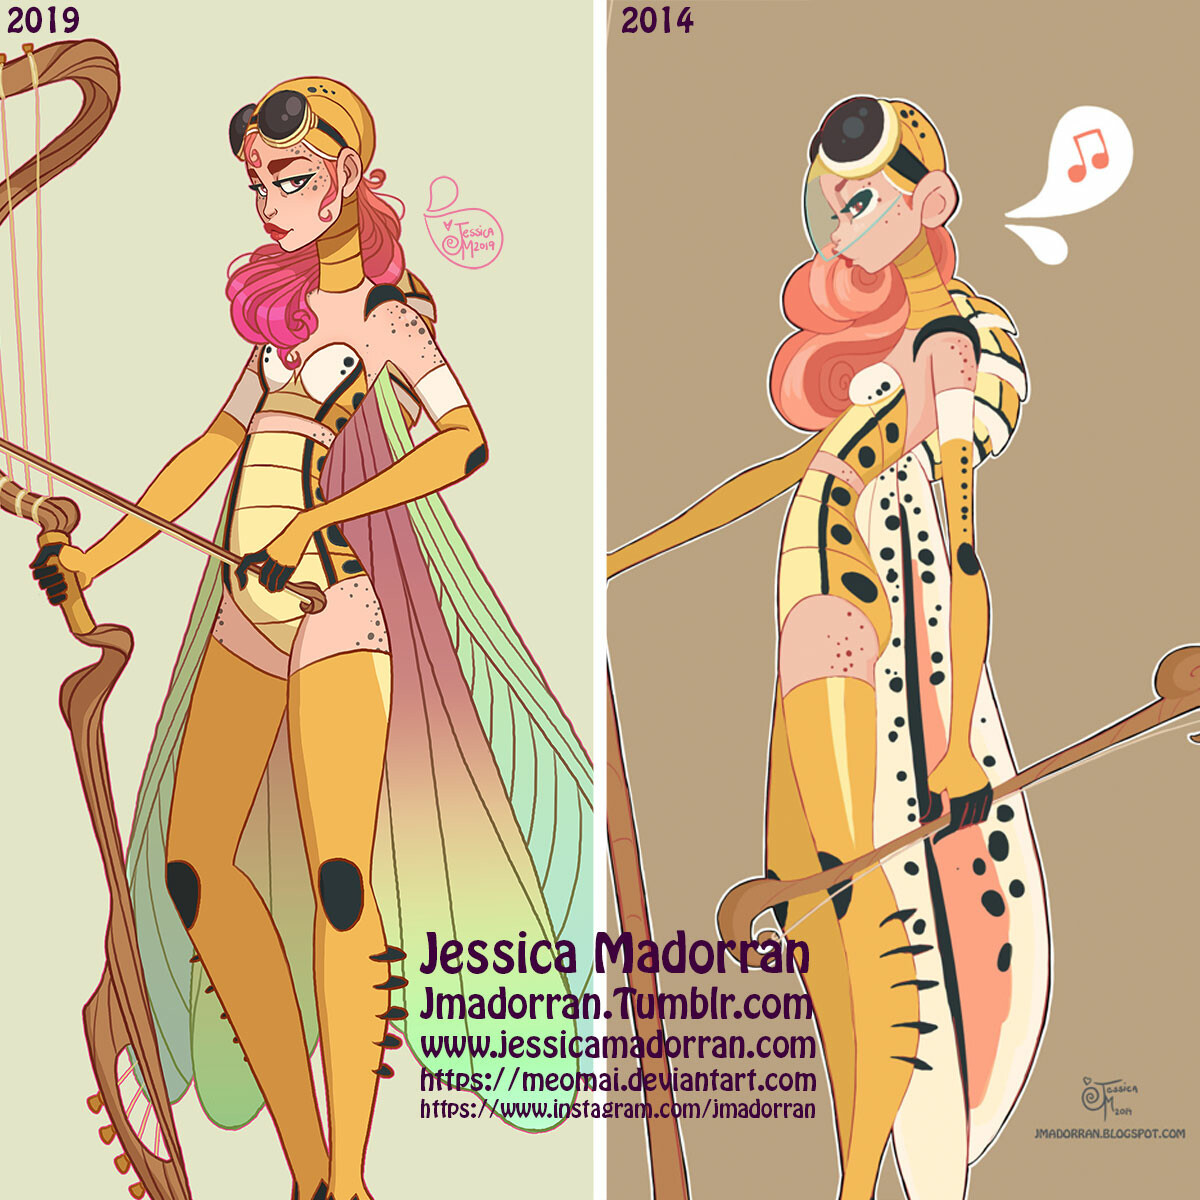 Jessica madorran character design redesign grasshopper warrior 2019 square comparison version artstaion